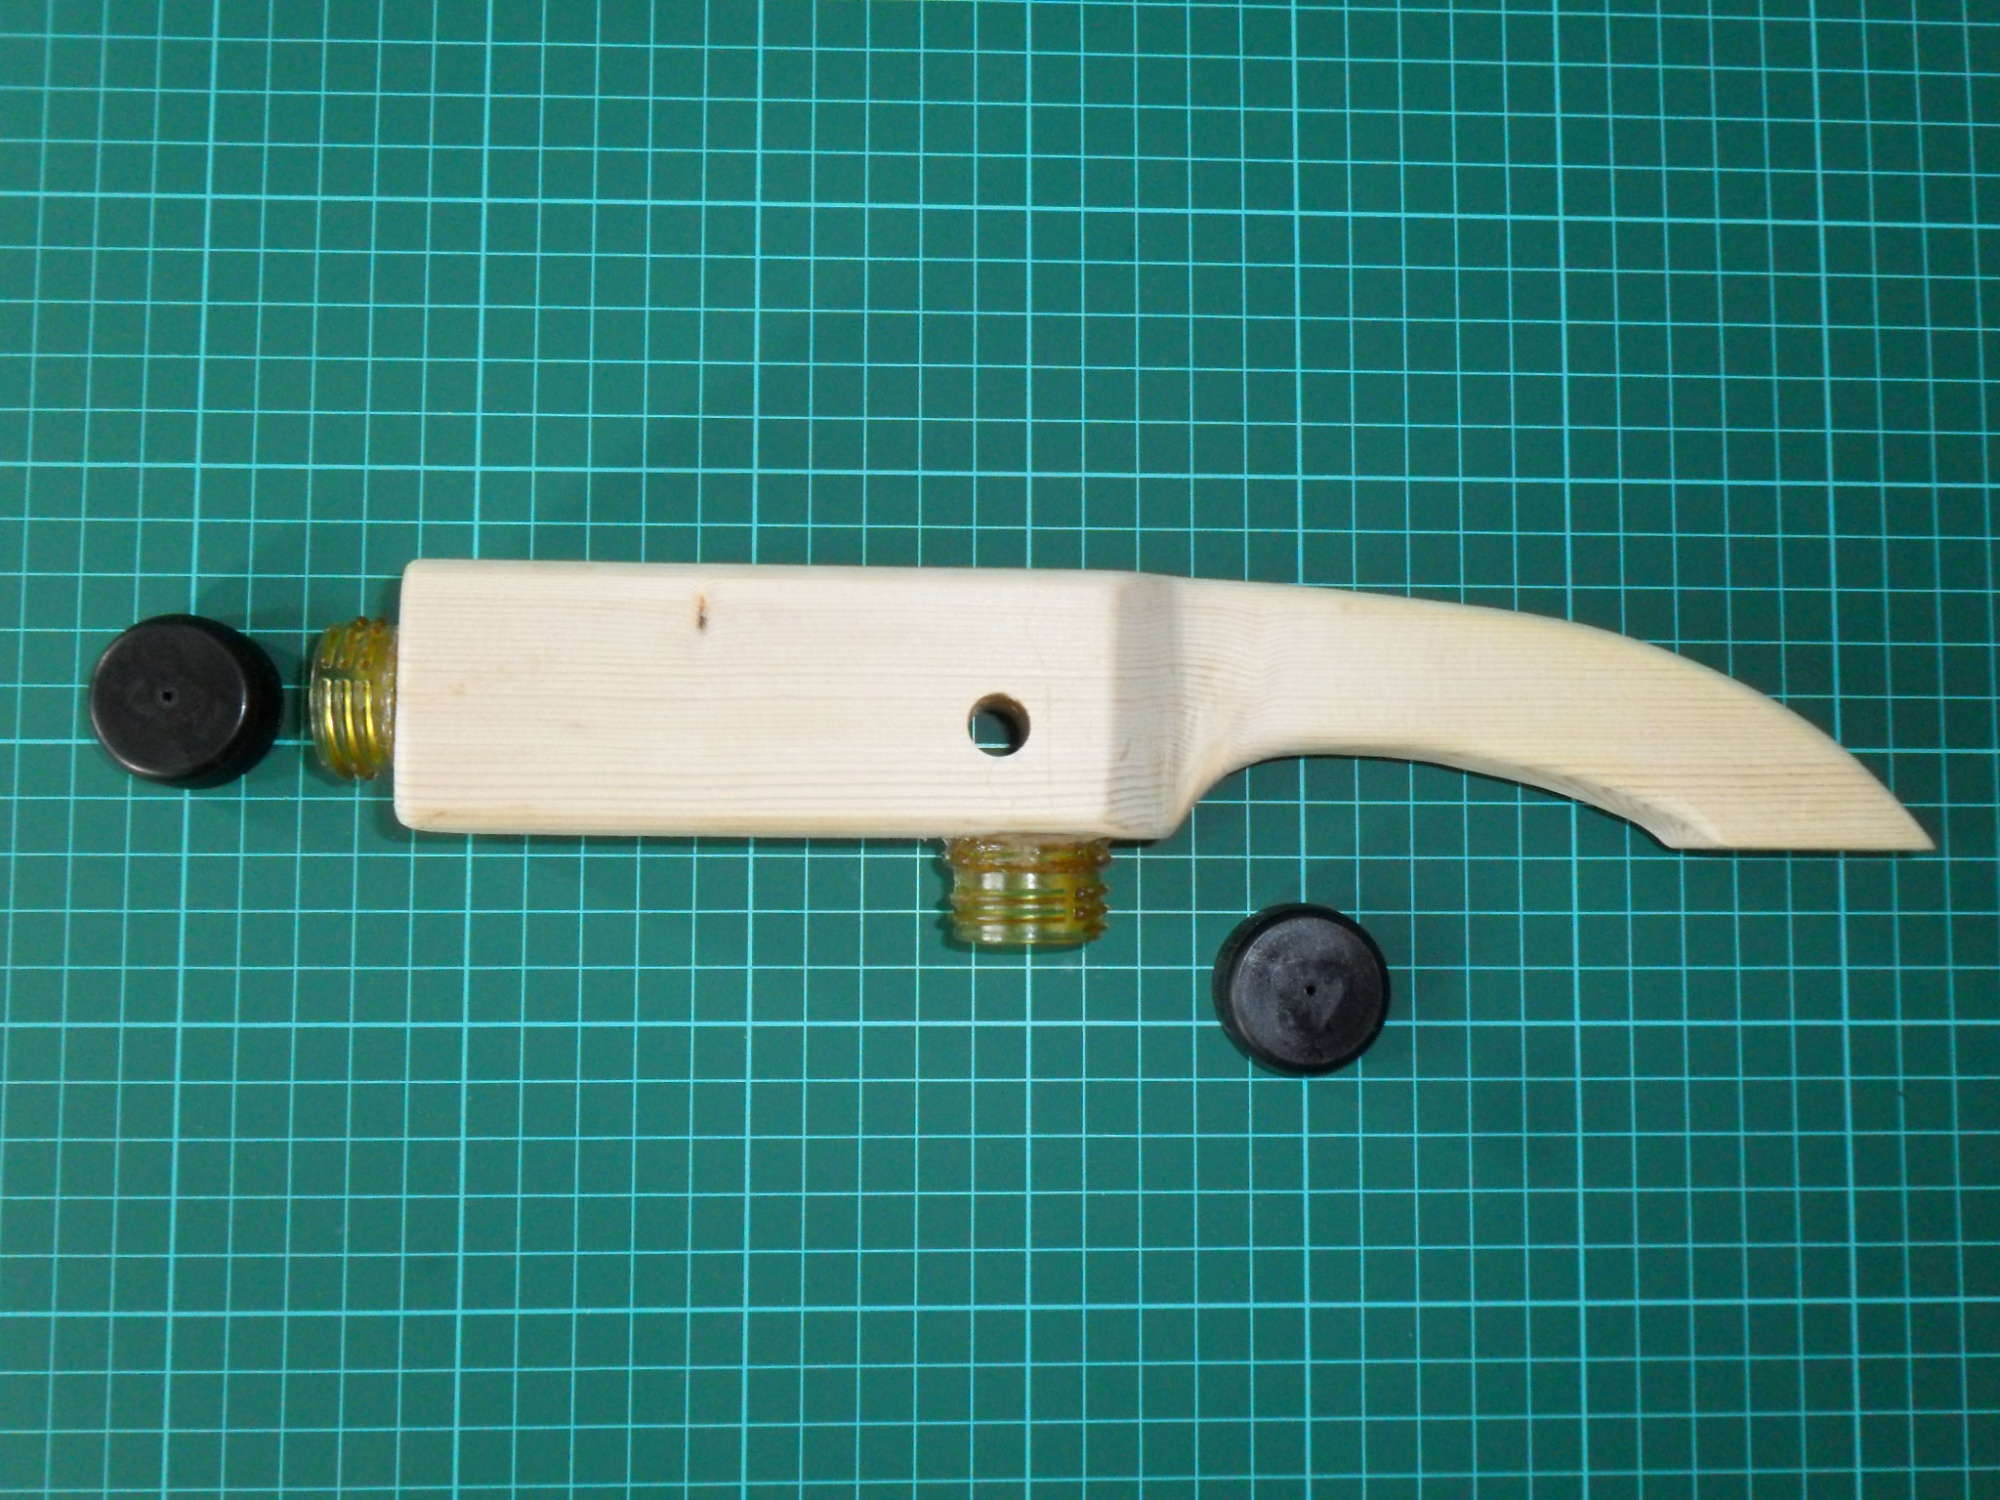 Wire tensioner for guitar pickup winding-sam_1449.jpg